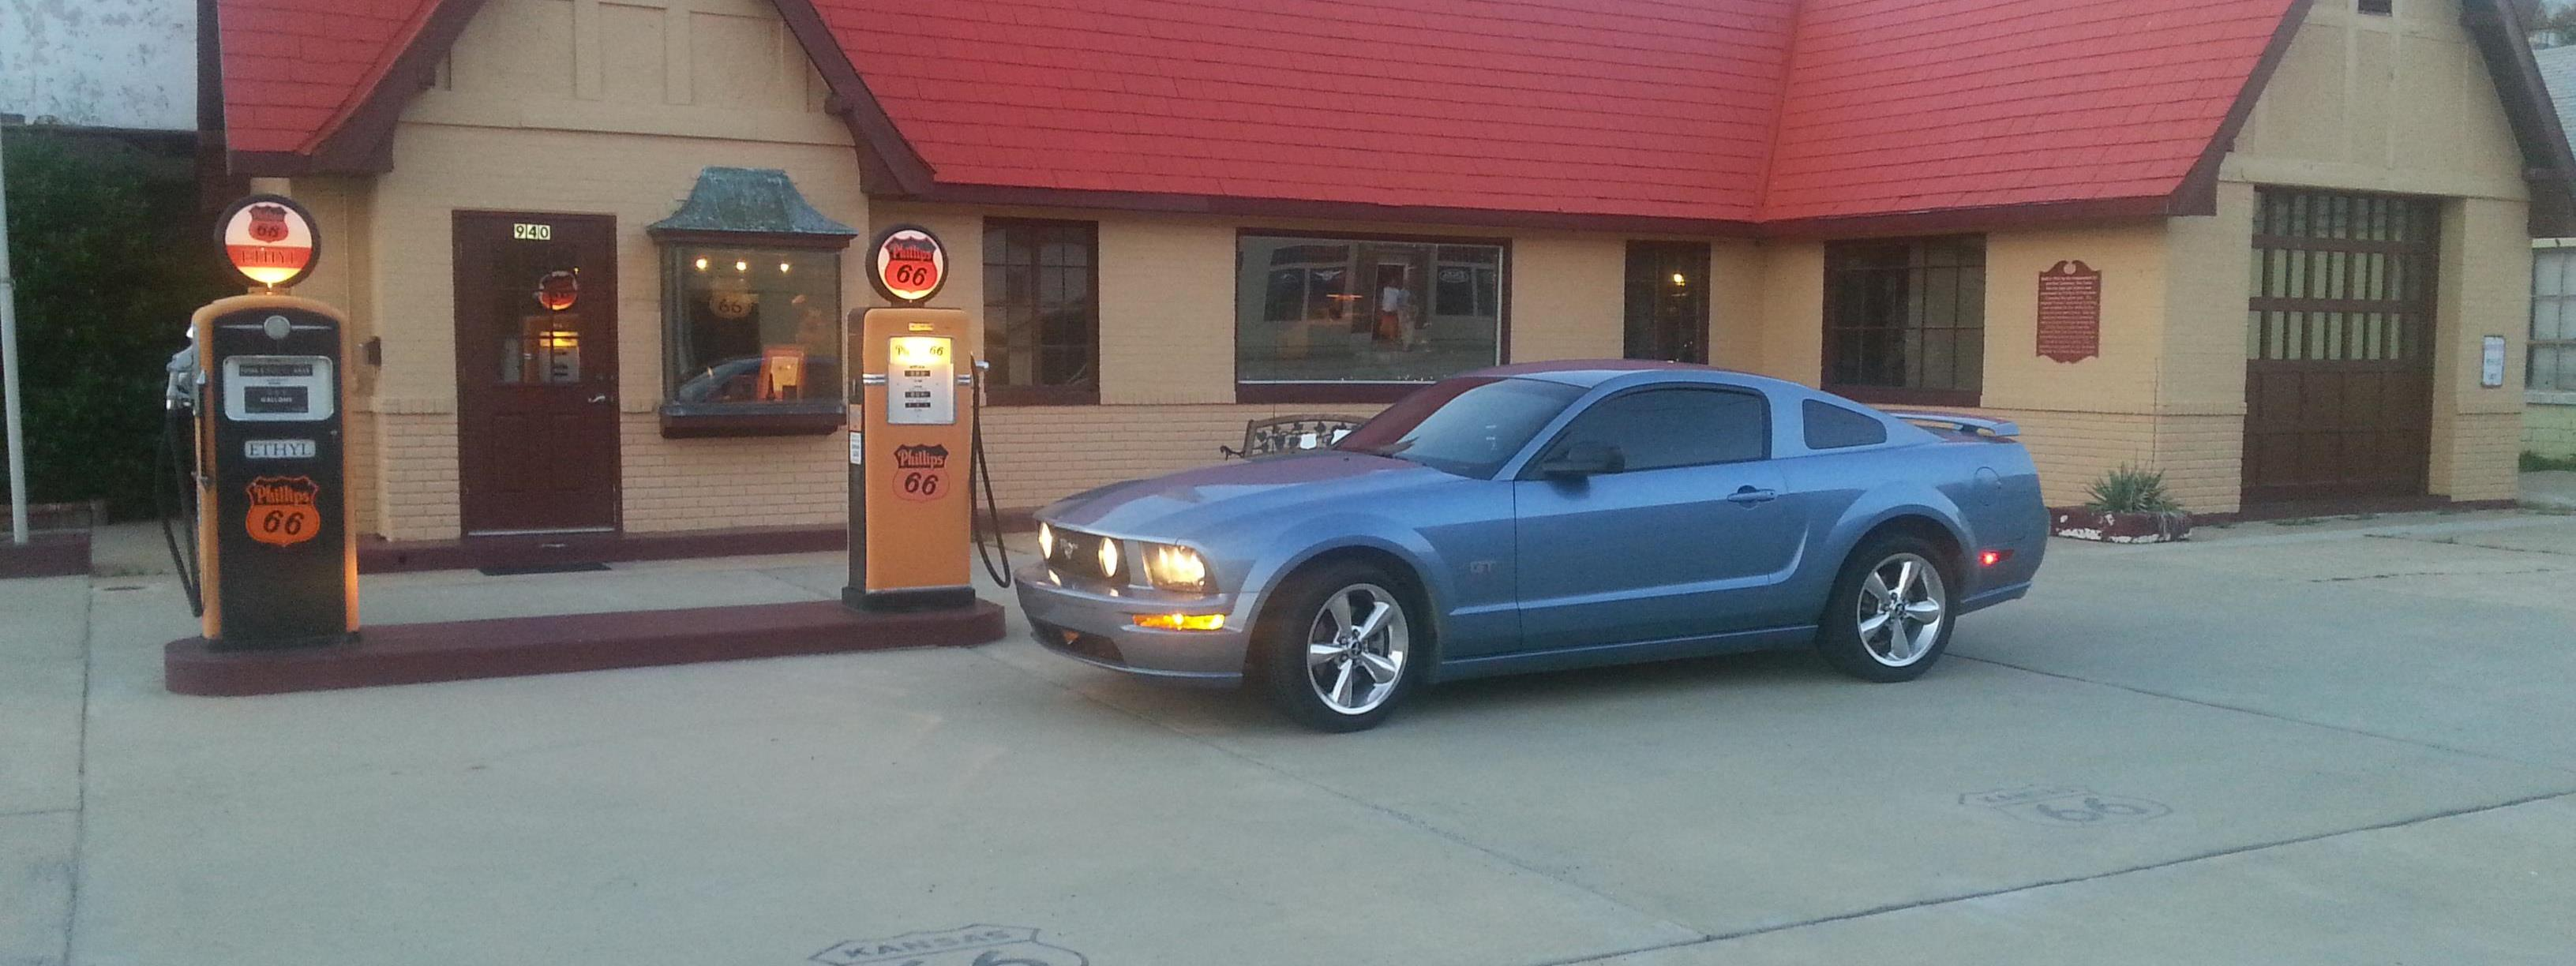 5.0implant 2006 Ford Mustang